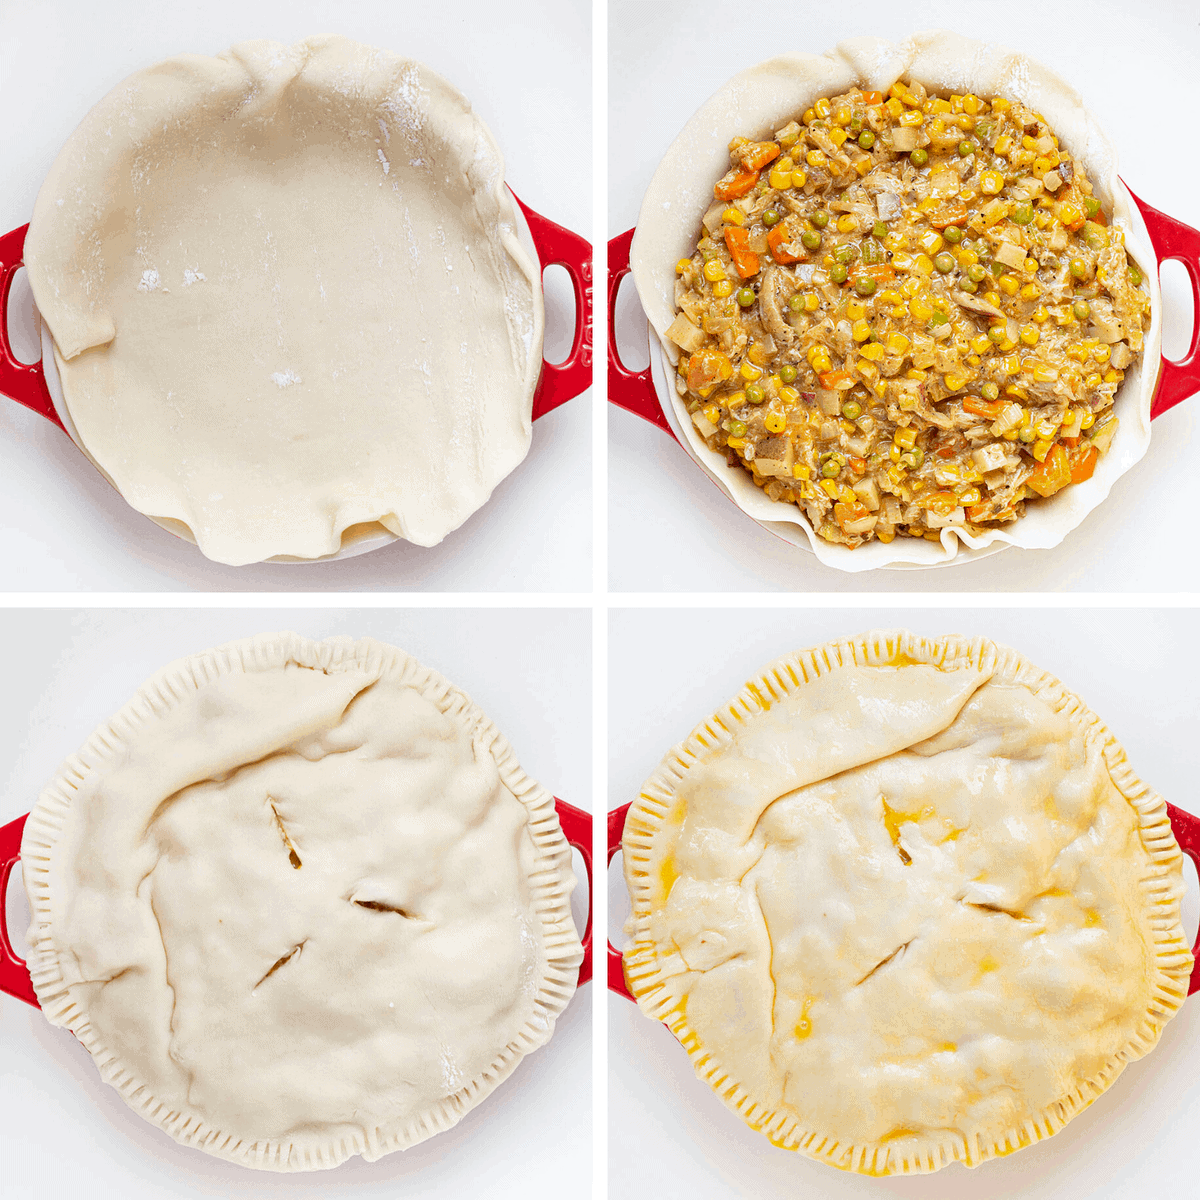 Steps on how to make a chicken pot pie